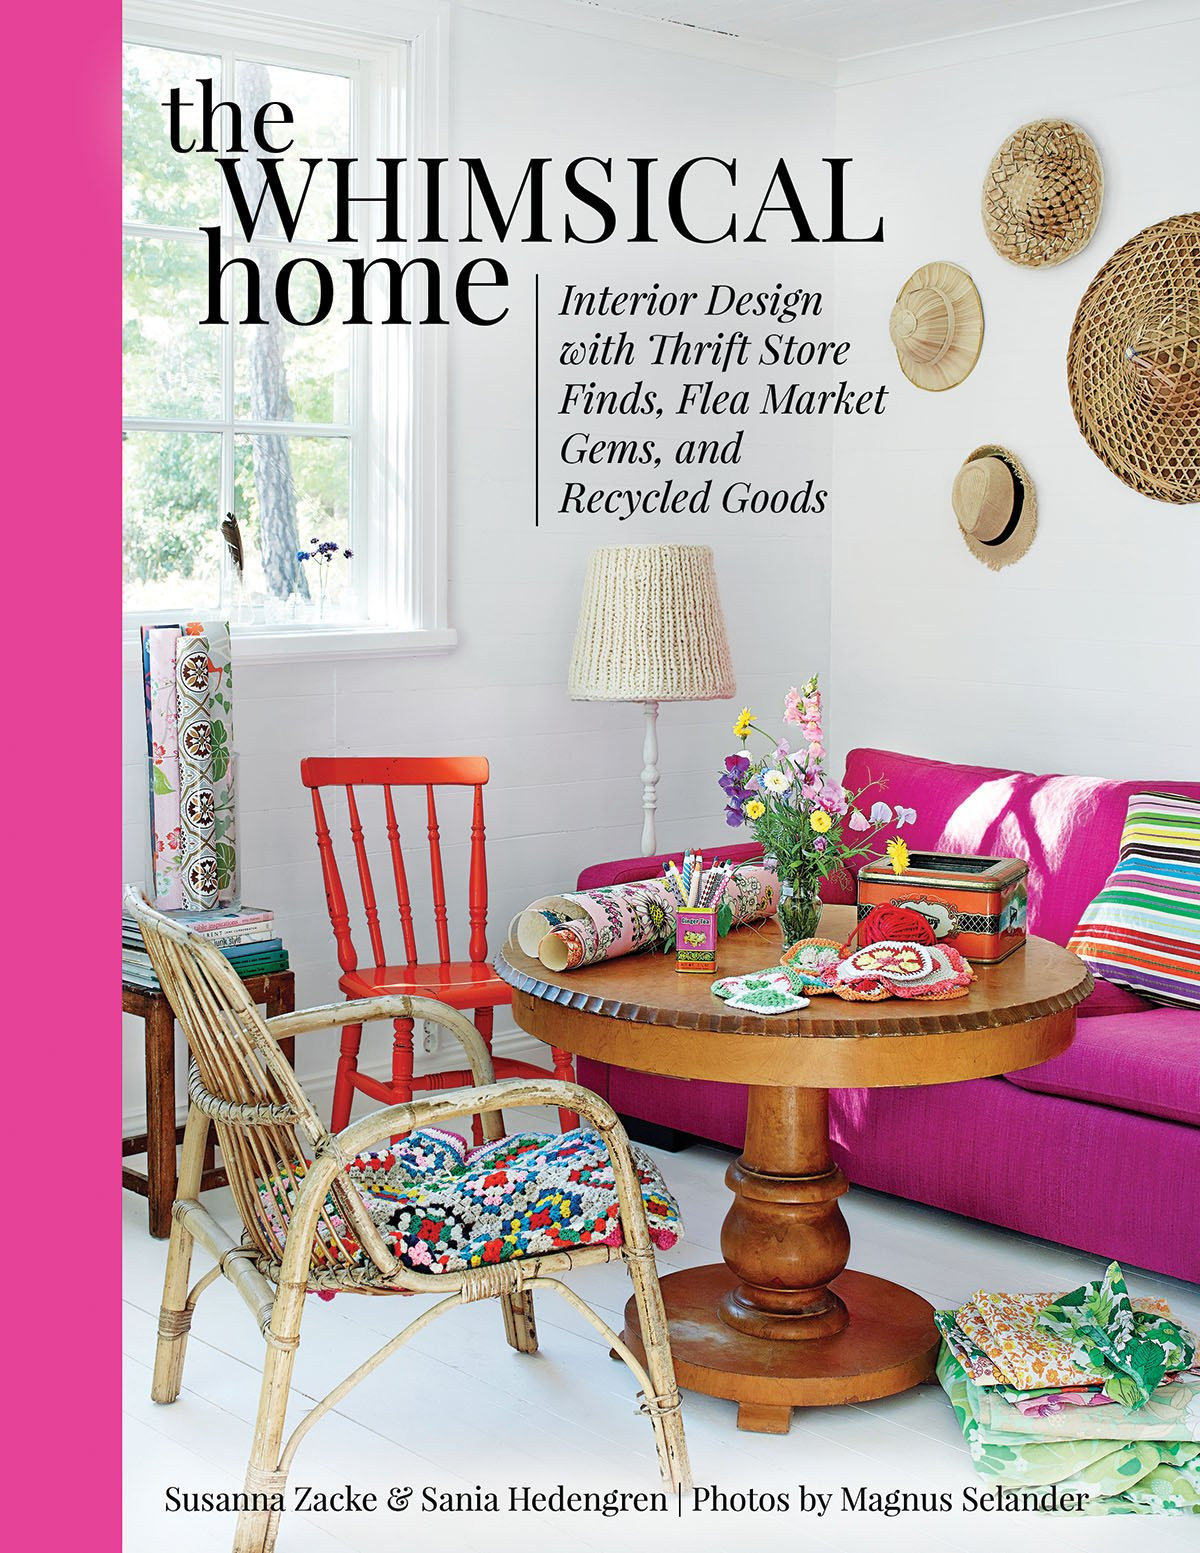 The Whimsical Home: Interior Design With Thrift Store Finds, Flea Market  Gems, And Recycled Goods: Susanna Zacke, Sania Hedengren: 9781634504041: ...